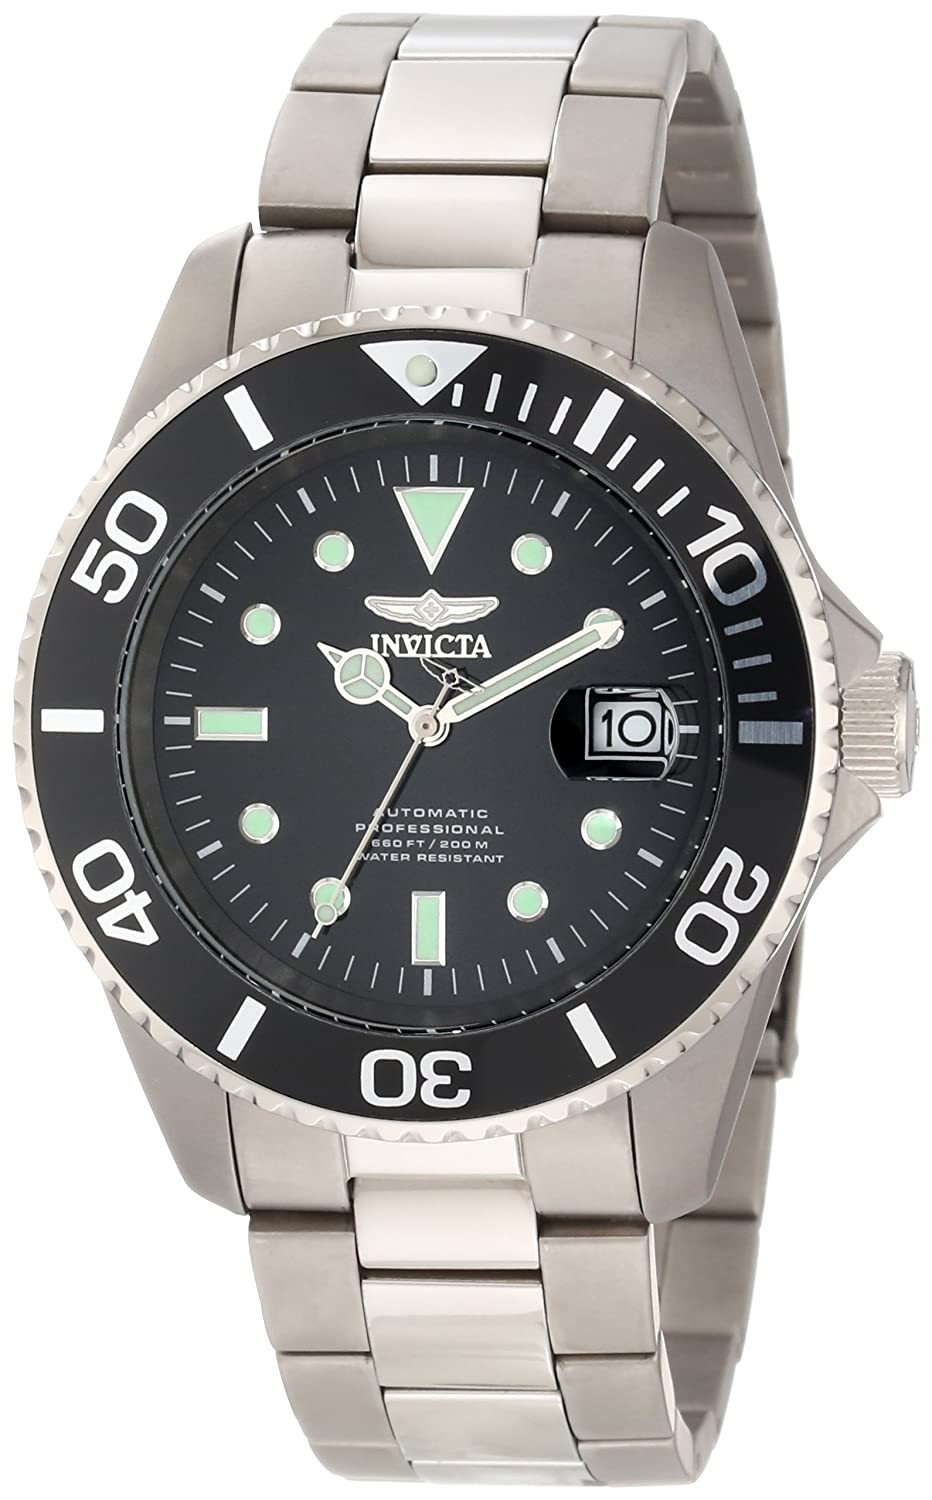 Đồng hồ nữ Invicta Mens 1516 I Force Collection Chronograph Strap Watch